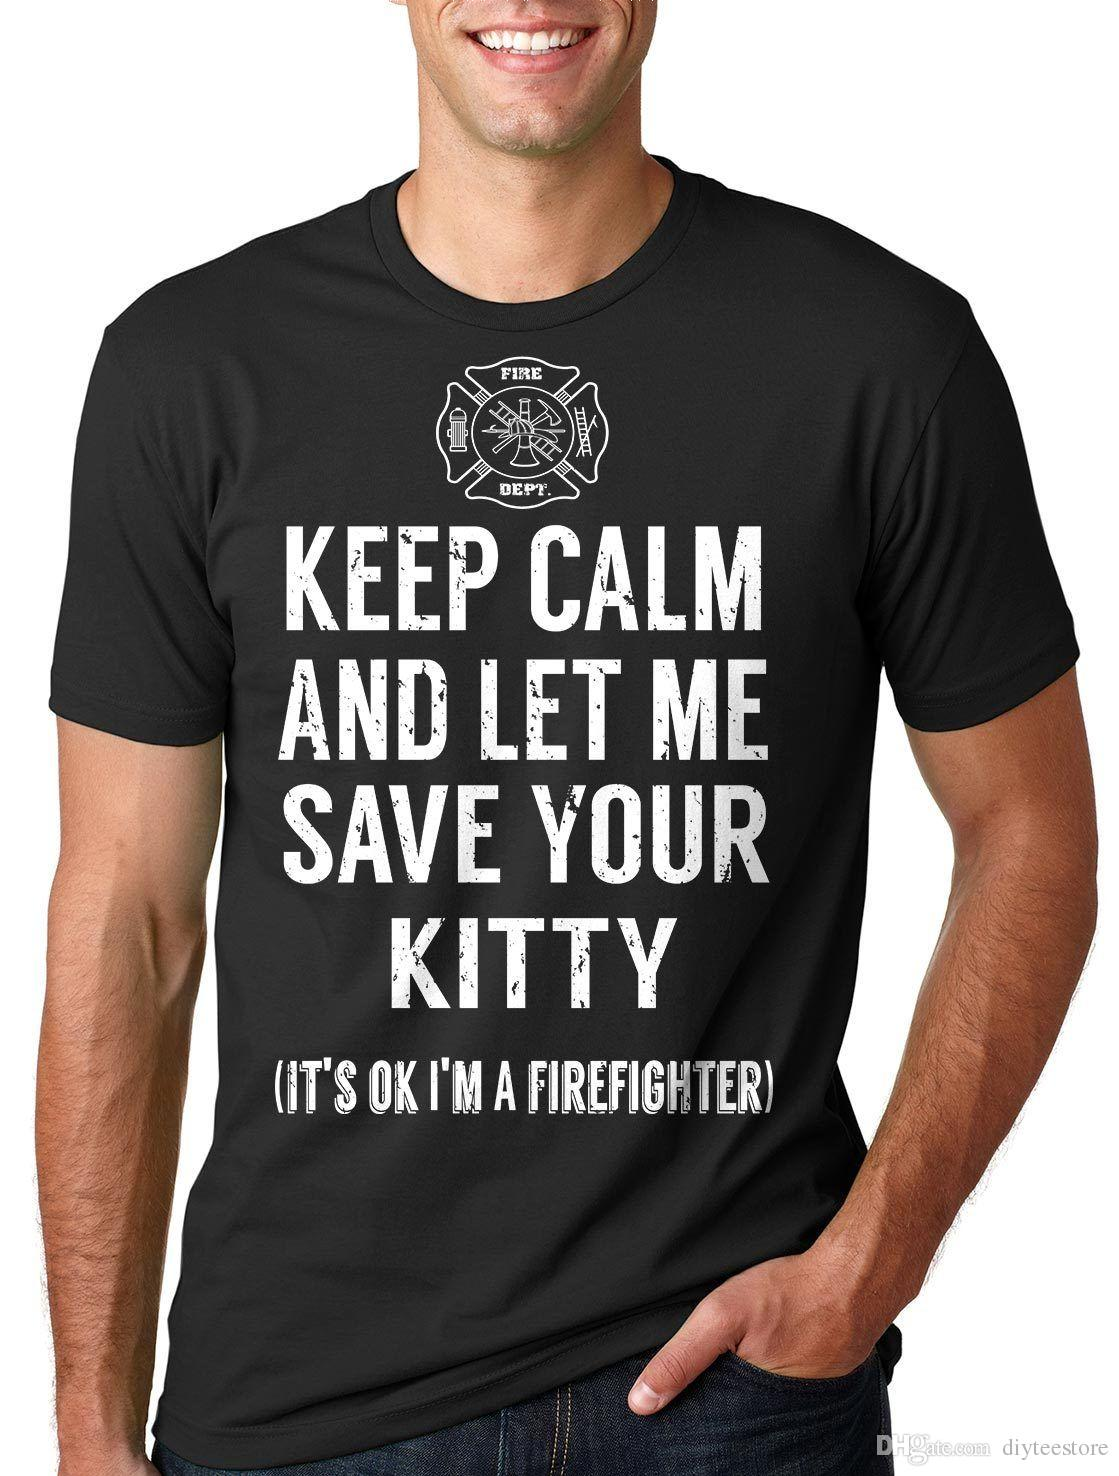 Firefighter T Shirt Designs | Gift For Firefighter T Shirt Fire Brigade Funny Shirt For Gift For